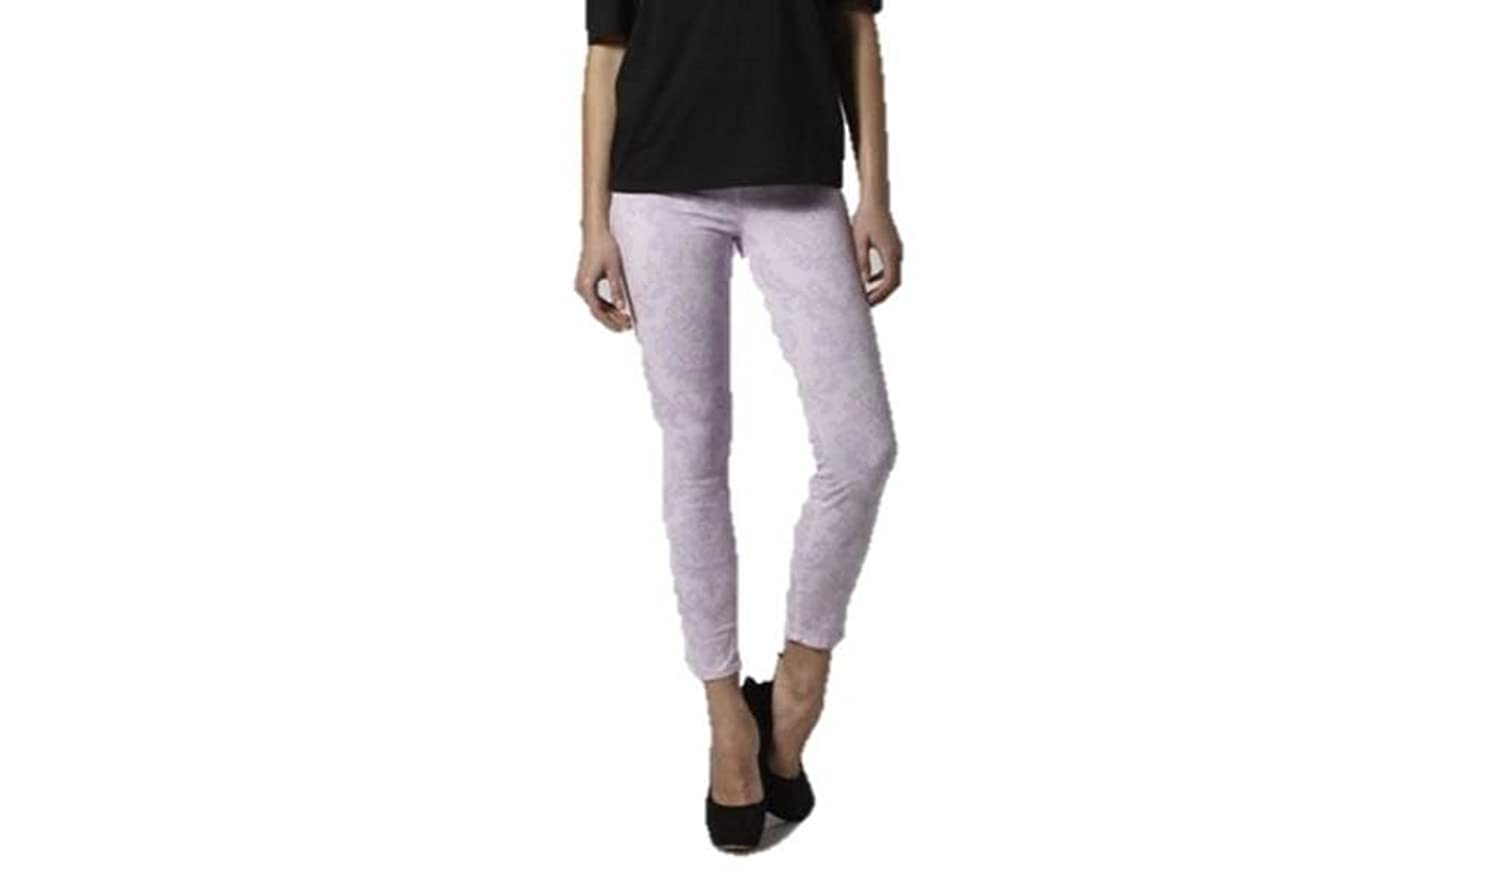 J Brand Women's 835 Cropped Baroque Floral Jeans, 27